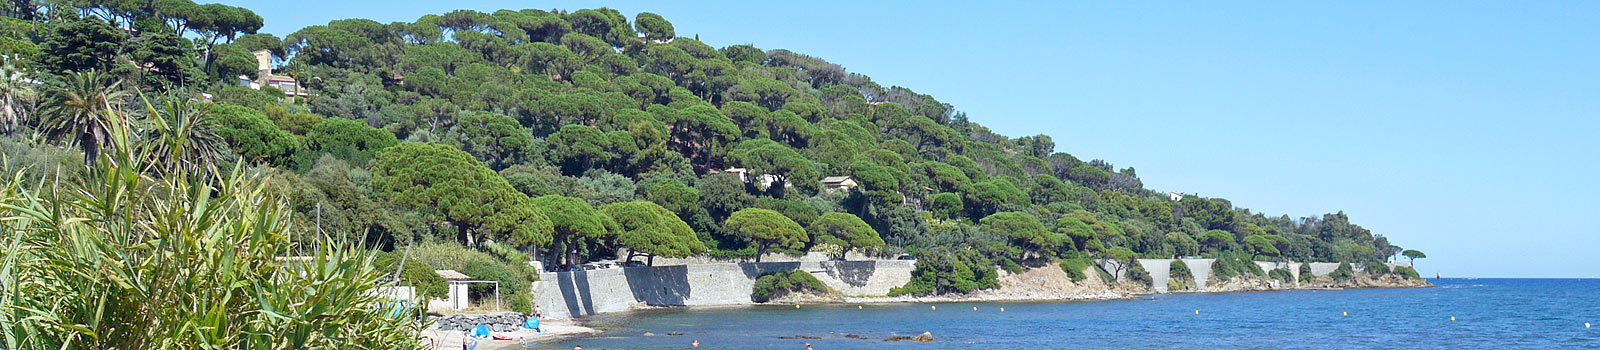 SITE DE SAINTE-MAXIME – Association de défense et de protection du littoral et du site de Sainte-Maxime